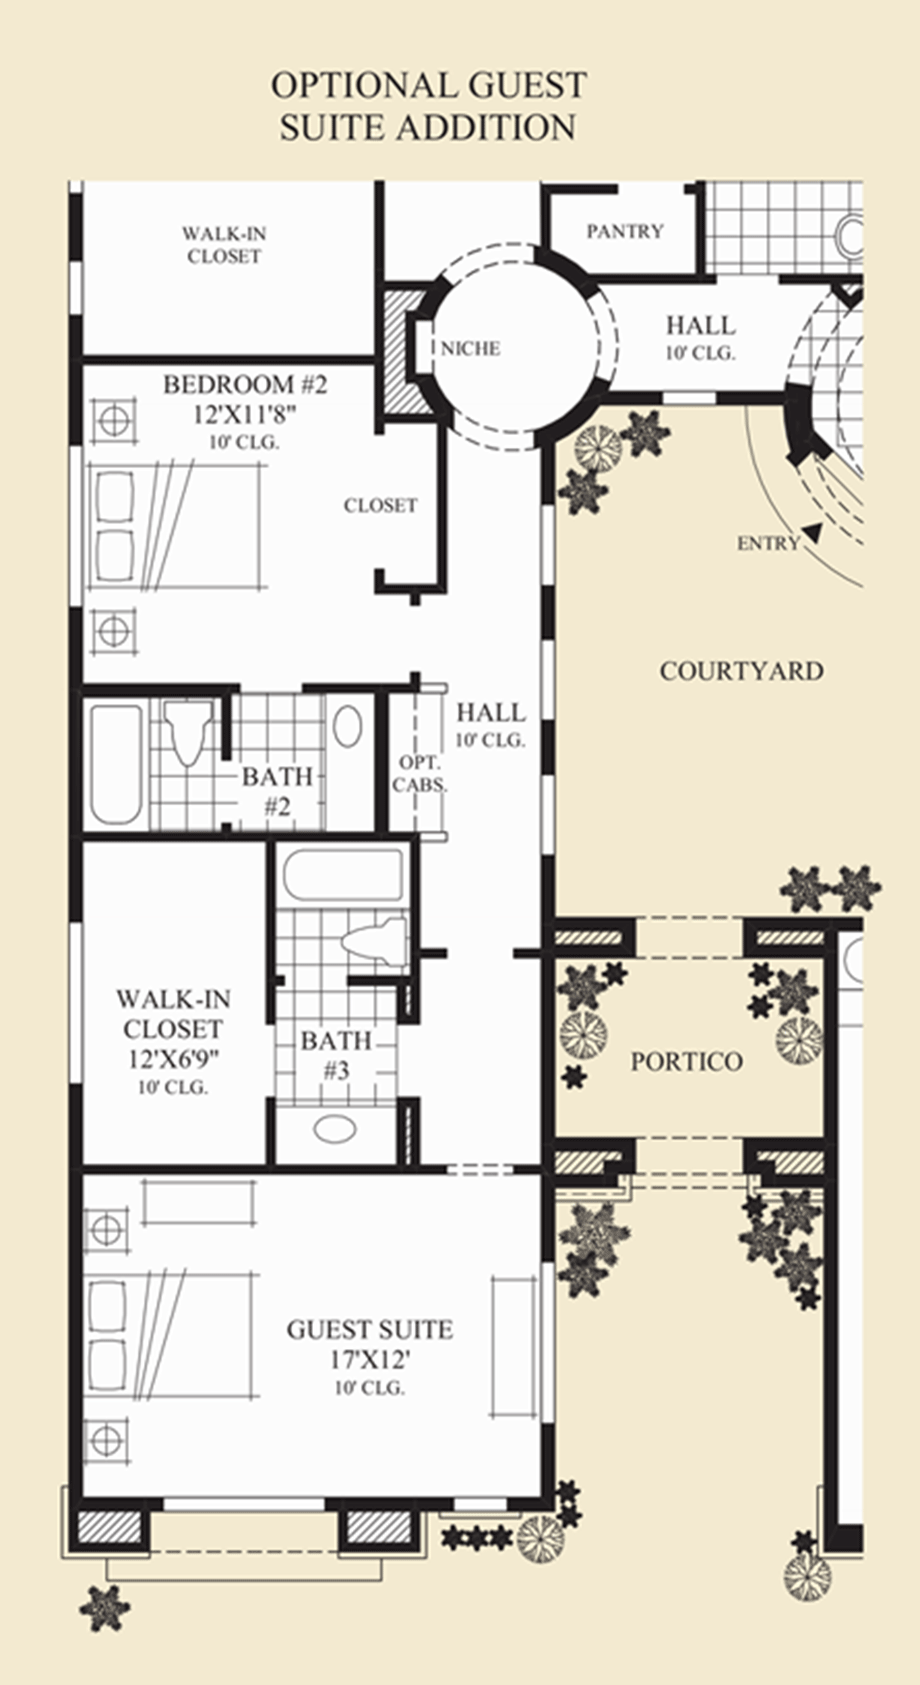 Optional Guest Suite Addition Floor Plan